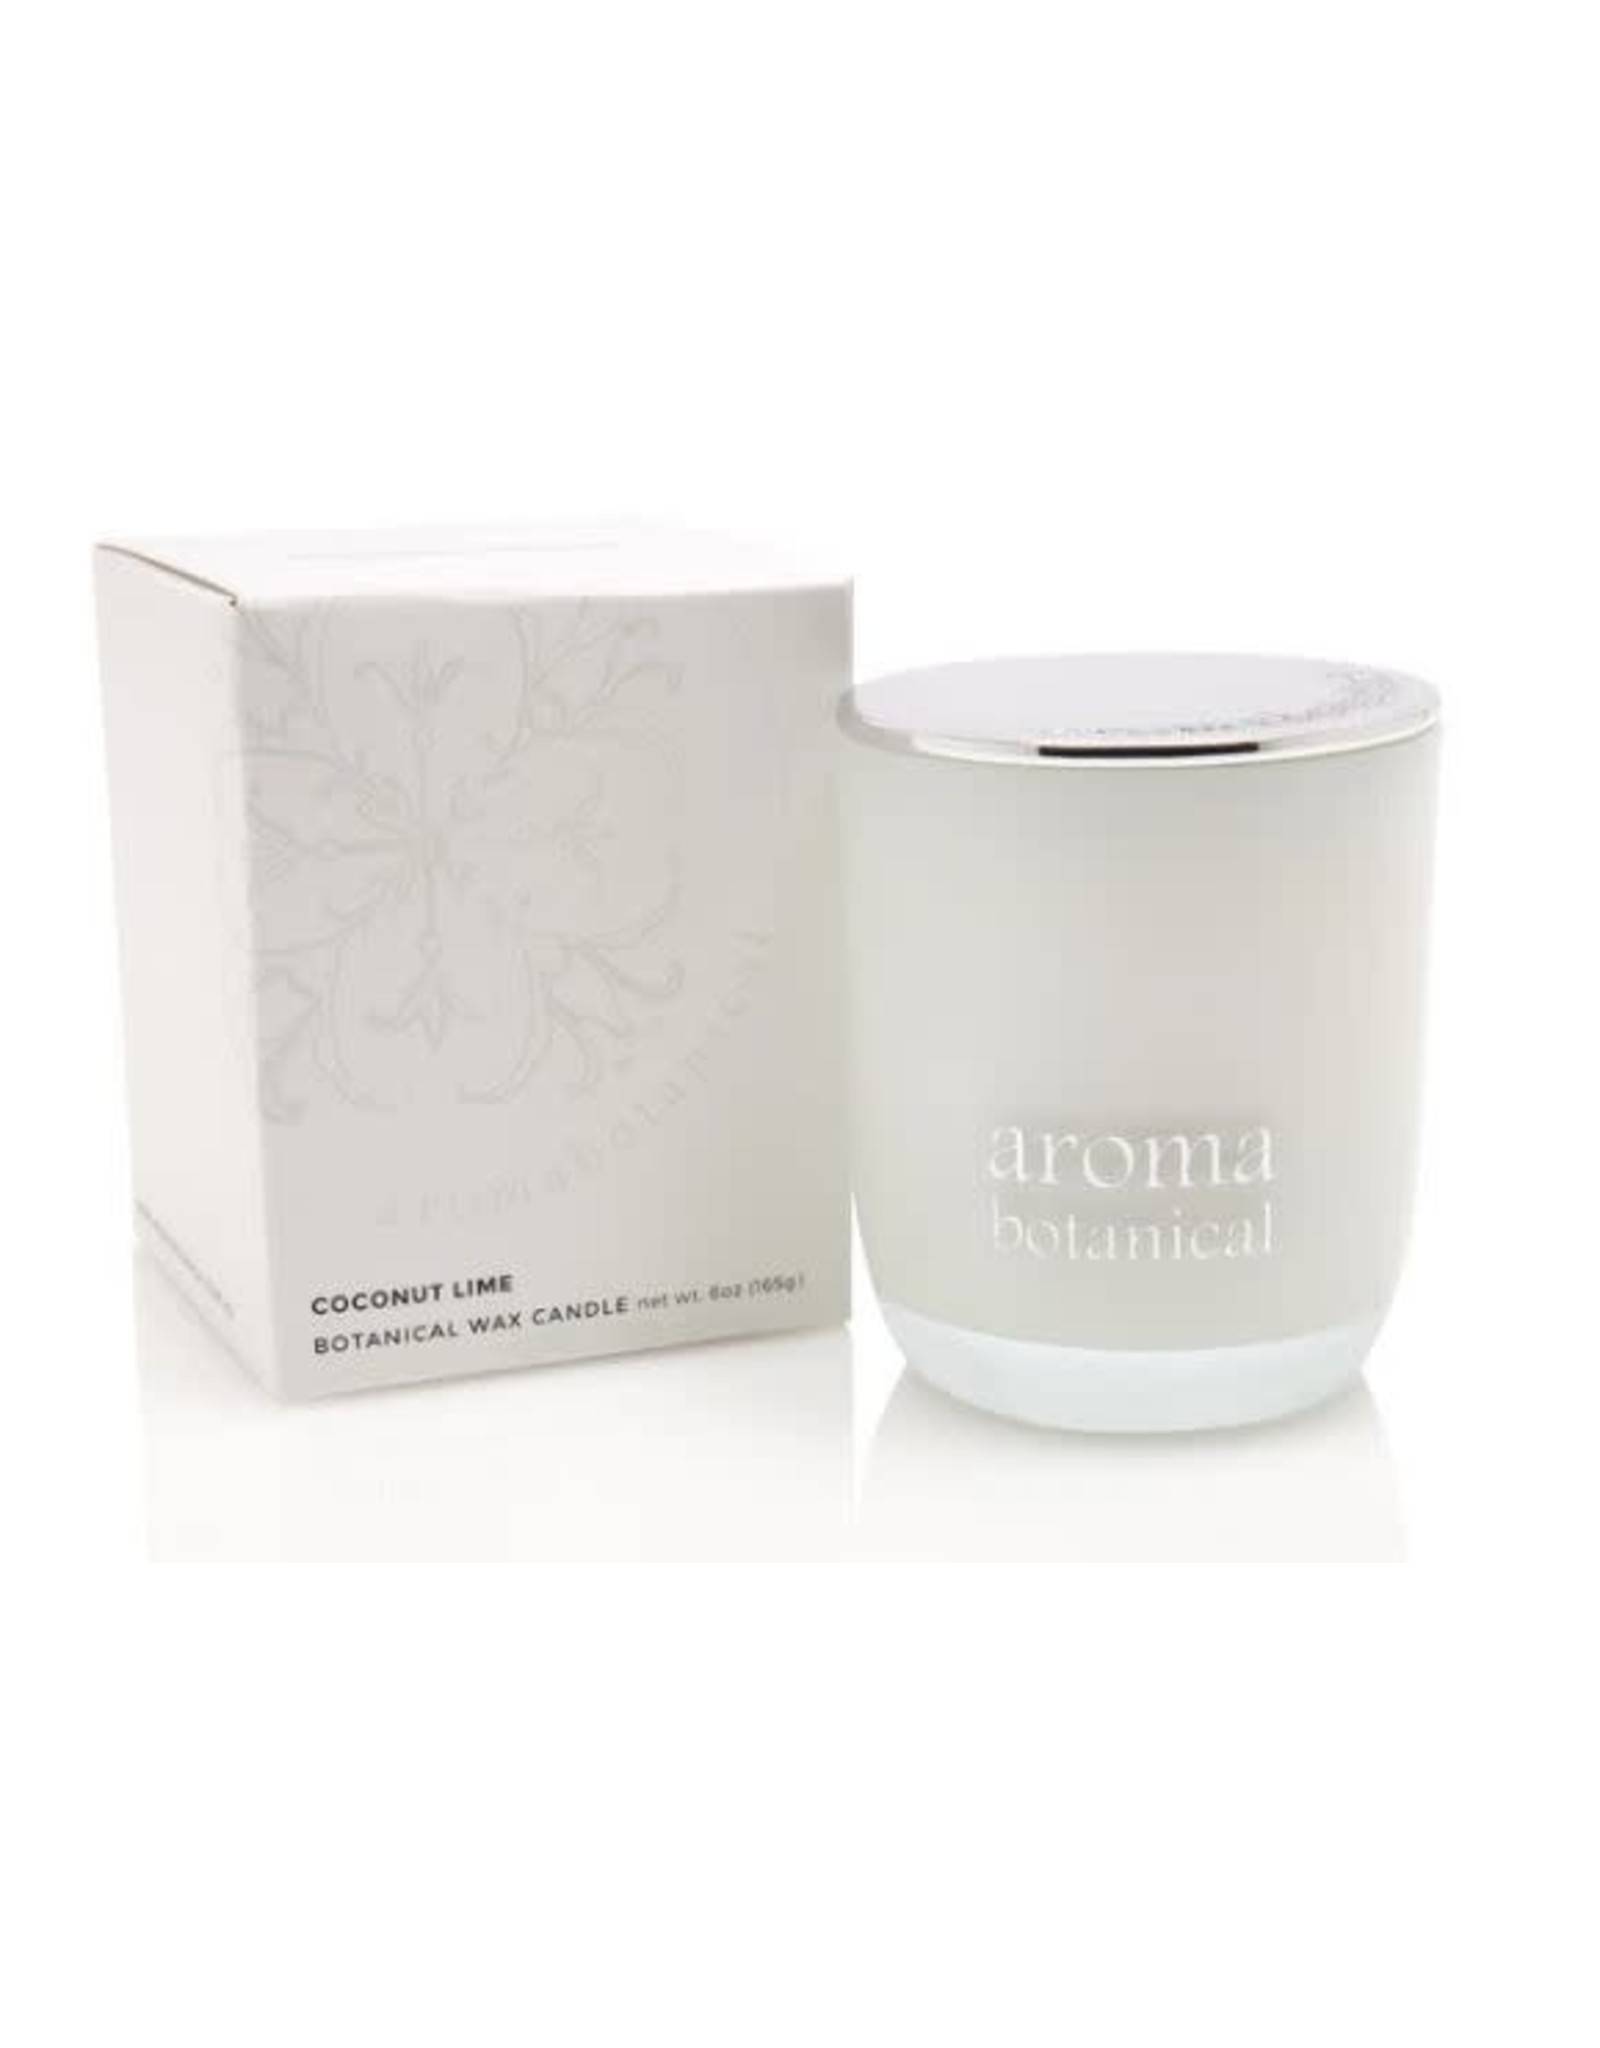 AromaBotanicals Glass Candle - Coconut & Lime 185g